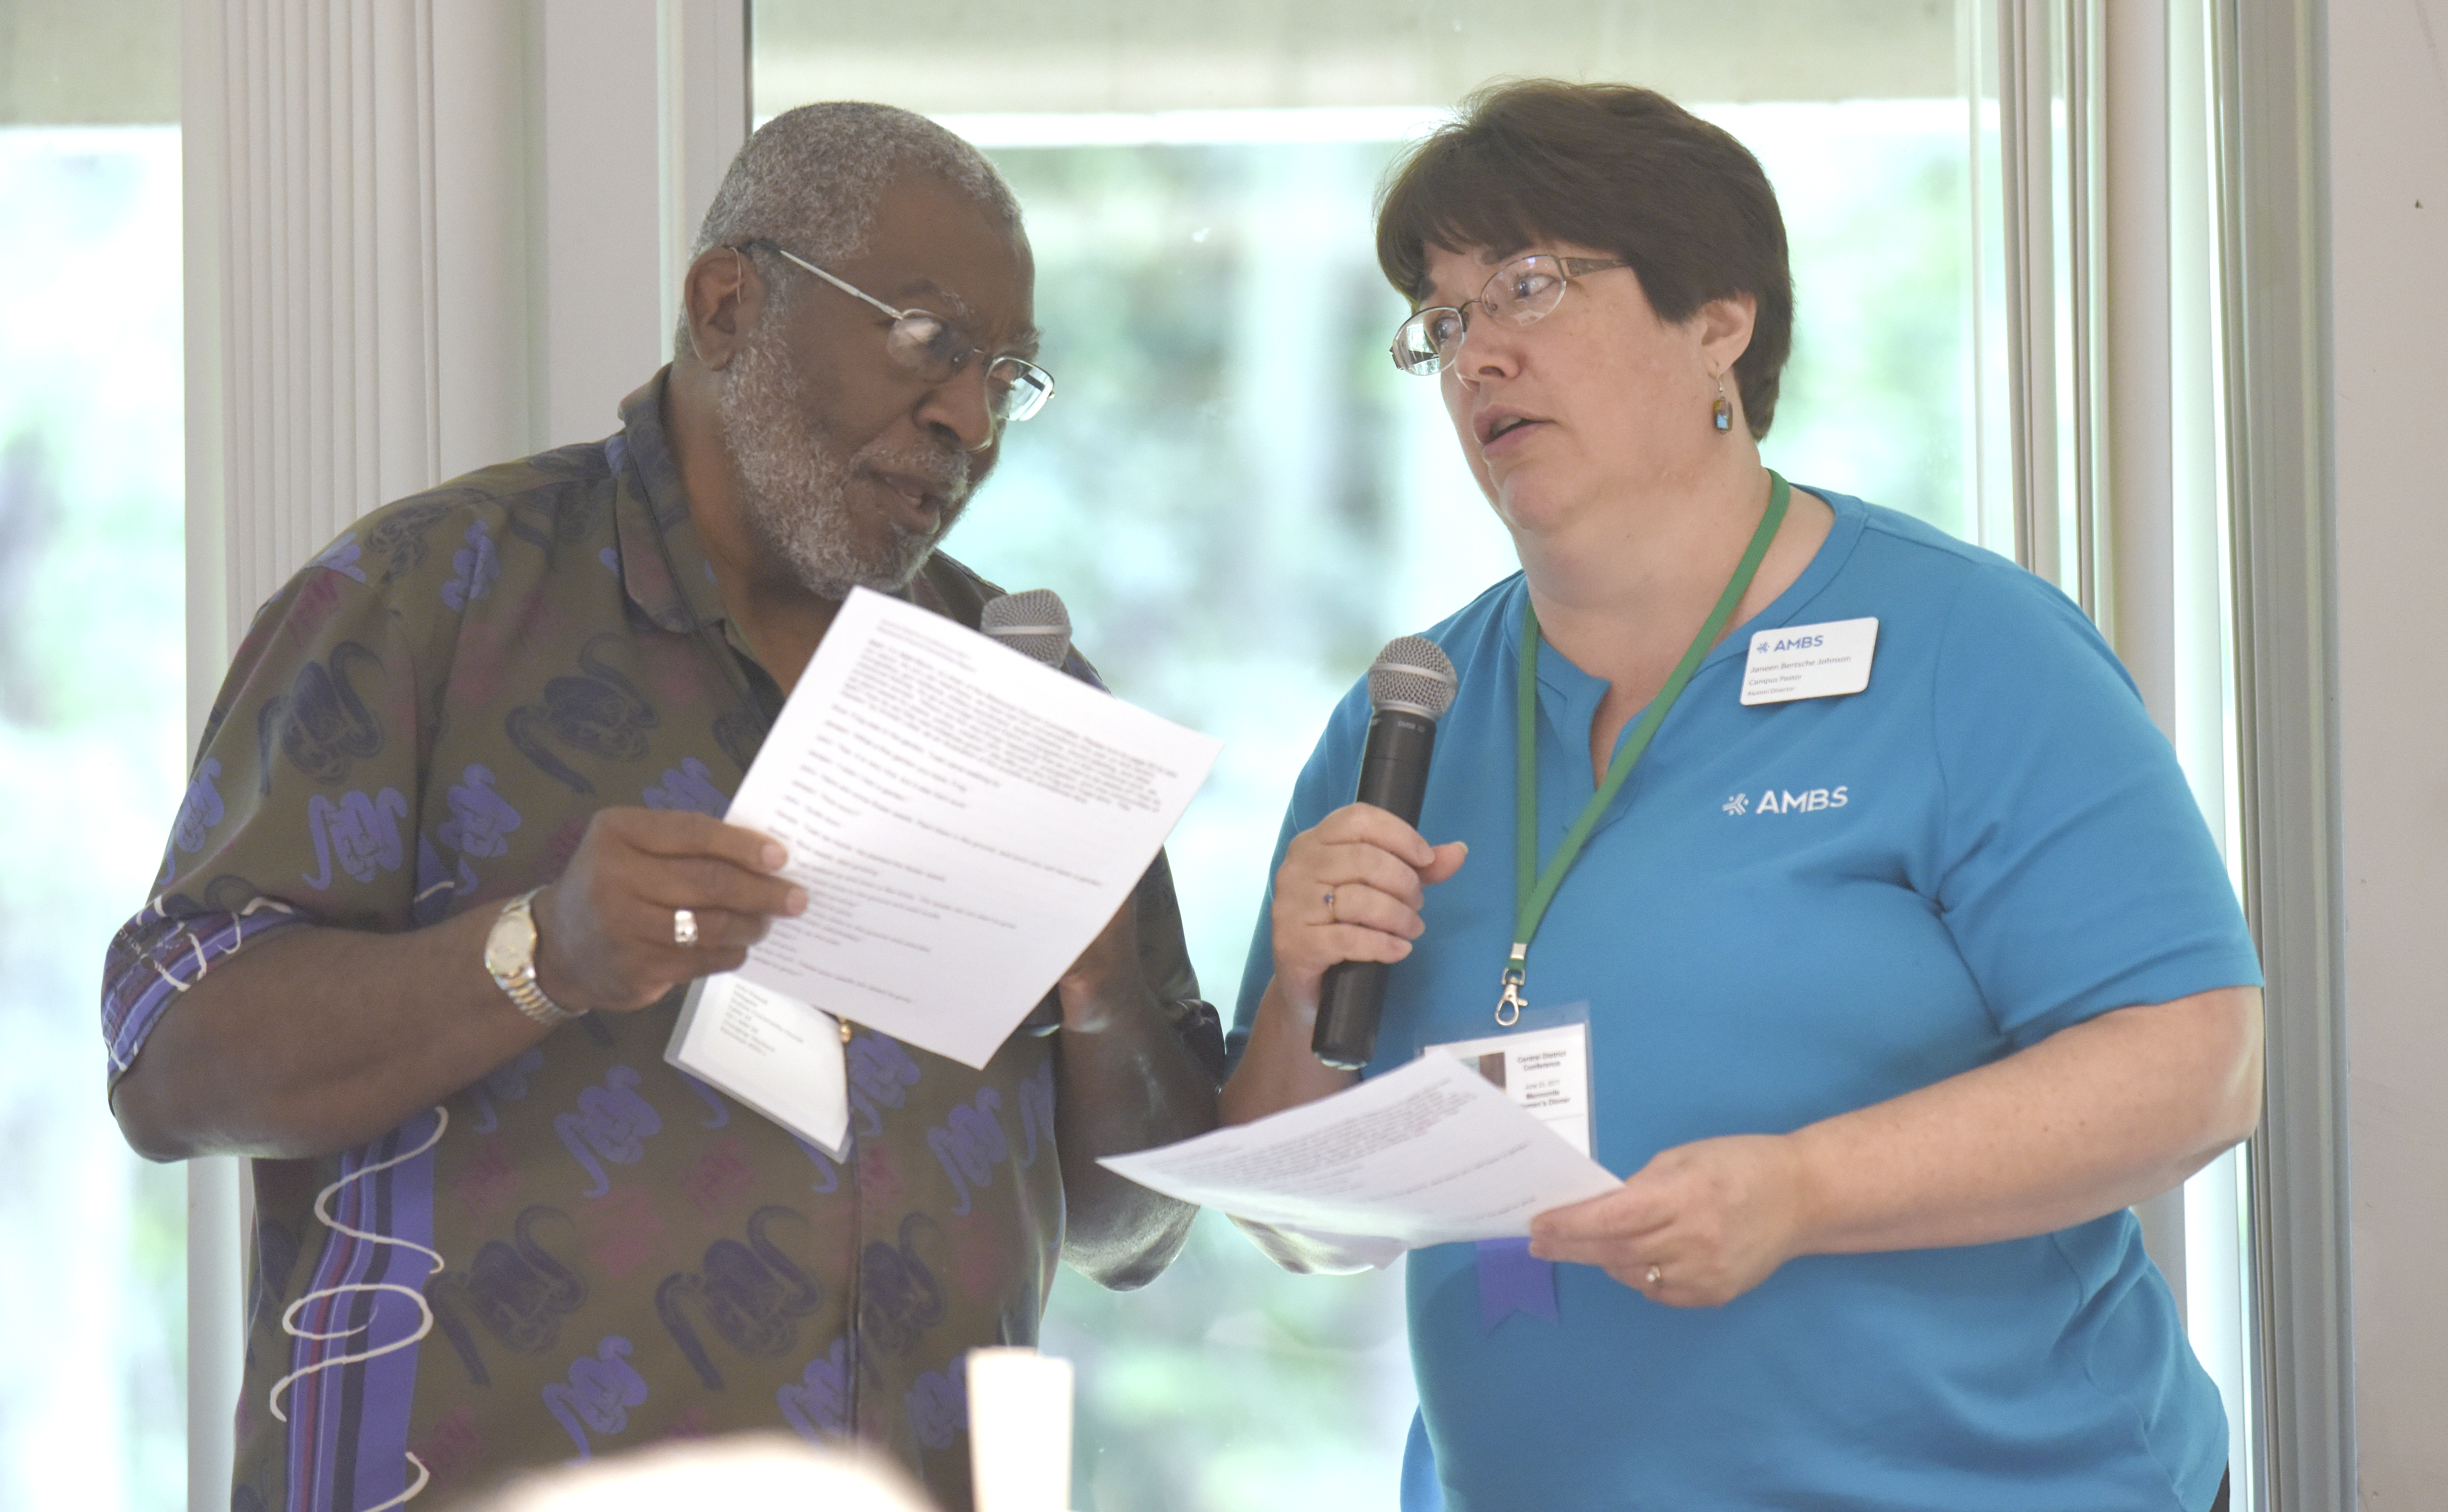 John Powell (left) and Janeen Bertsche Johnson take part in a Frog and Toad story as a way of reporting on the Missional Church Committee report for 2017, during Friday morning sessions at Central District Conference, Friday, June 23, 2017, at Bluffton University, Bluffton, OH. Bertsche Johnson attends Eighth Street, Goshen and Powell attends Shalom, Ann Arbor. Photograph by J. Tyler Klassen